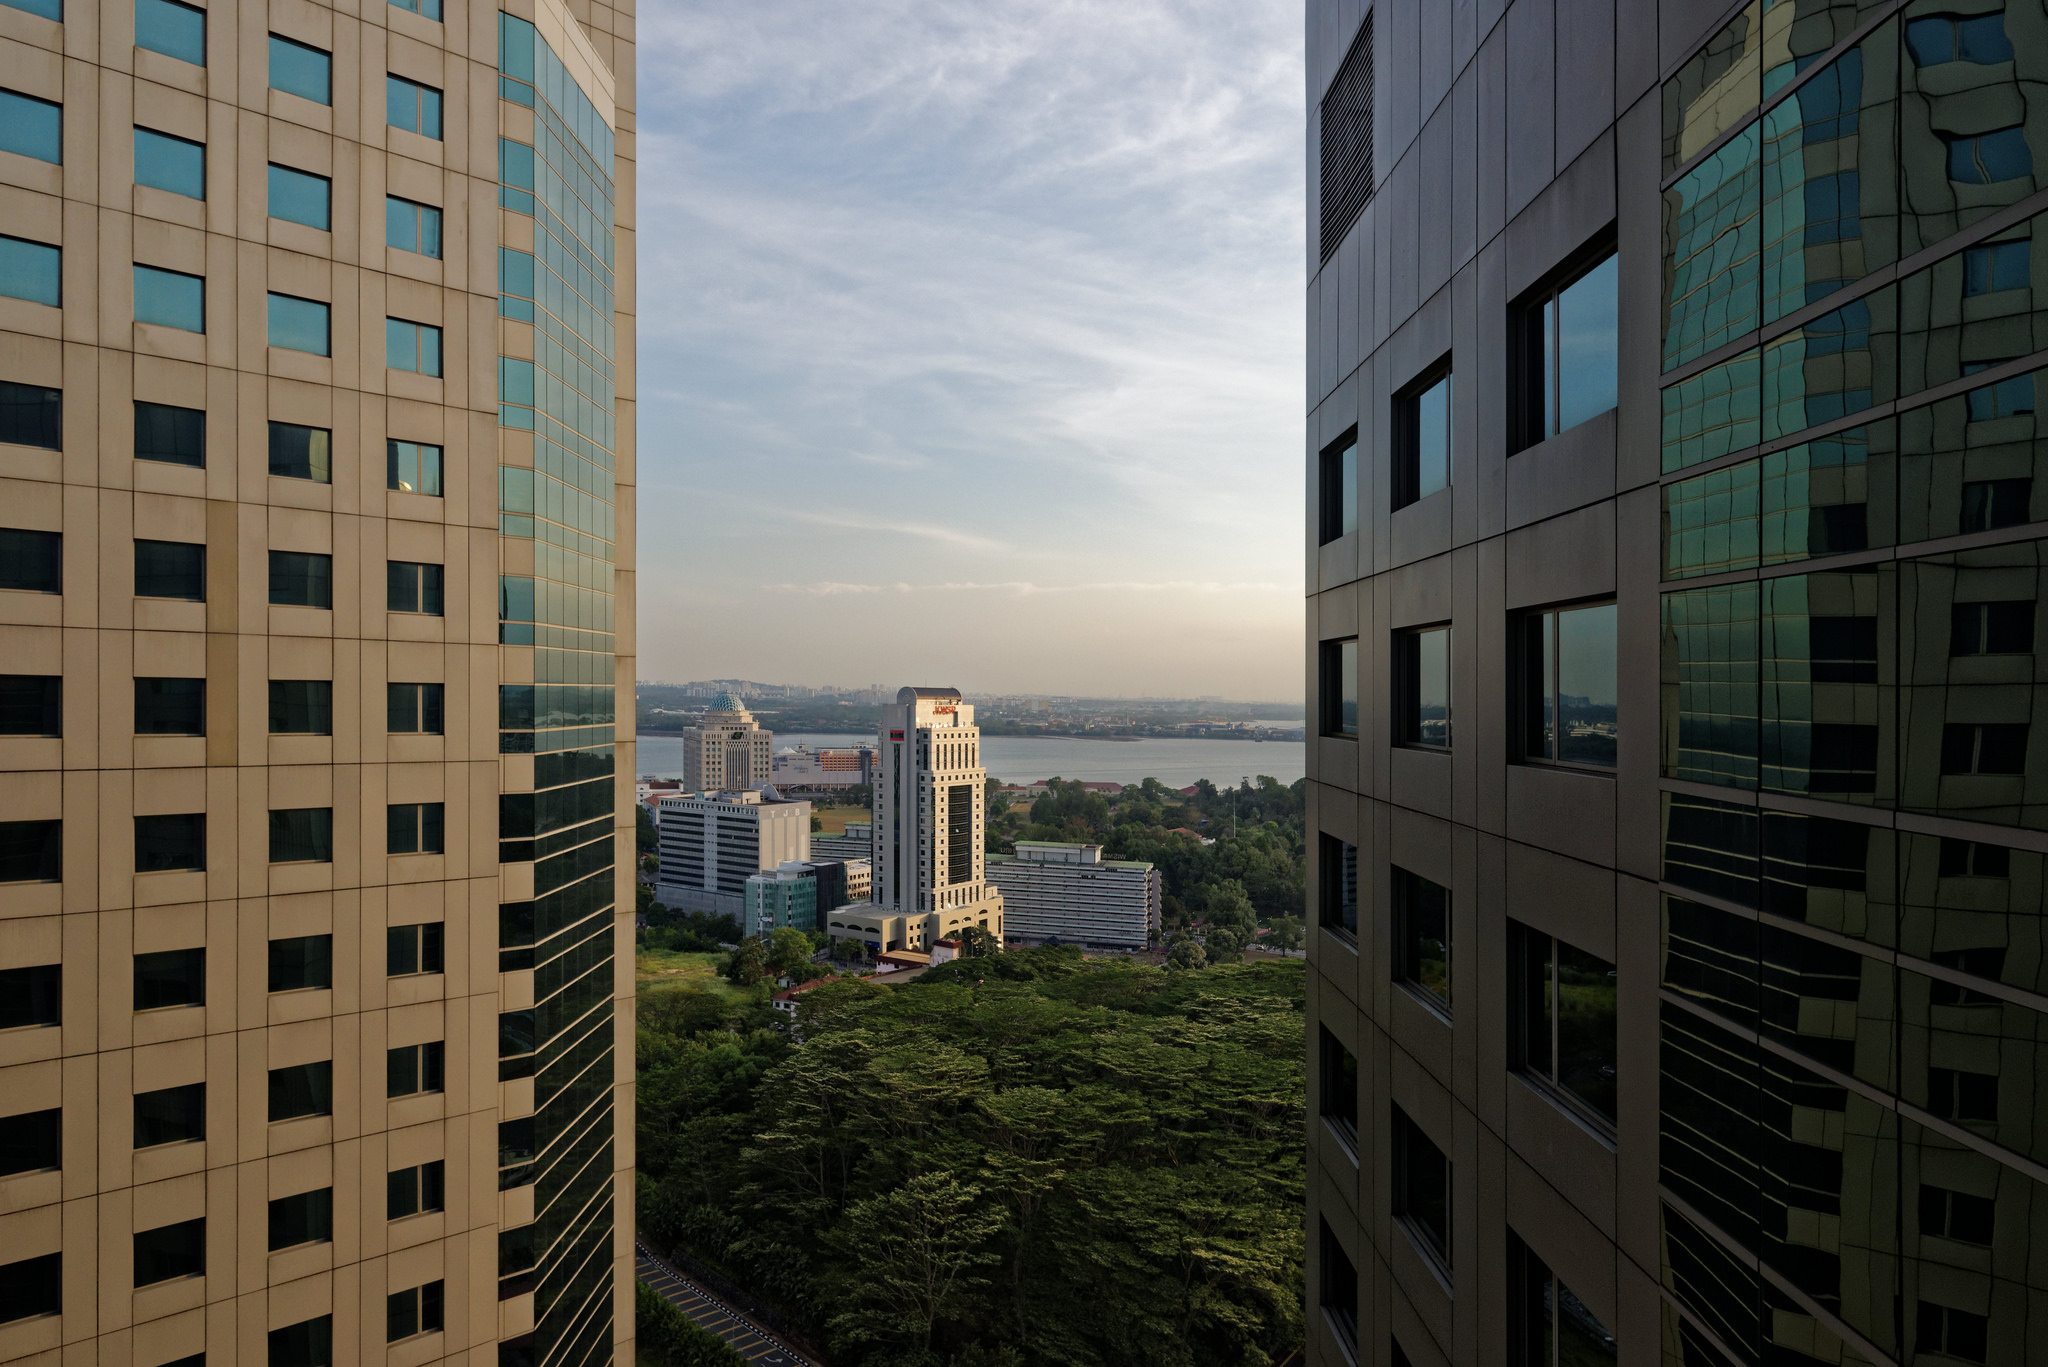 View from the Executive Lounge of the Doubletree By Hilton Hotel Johor Bahru